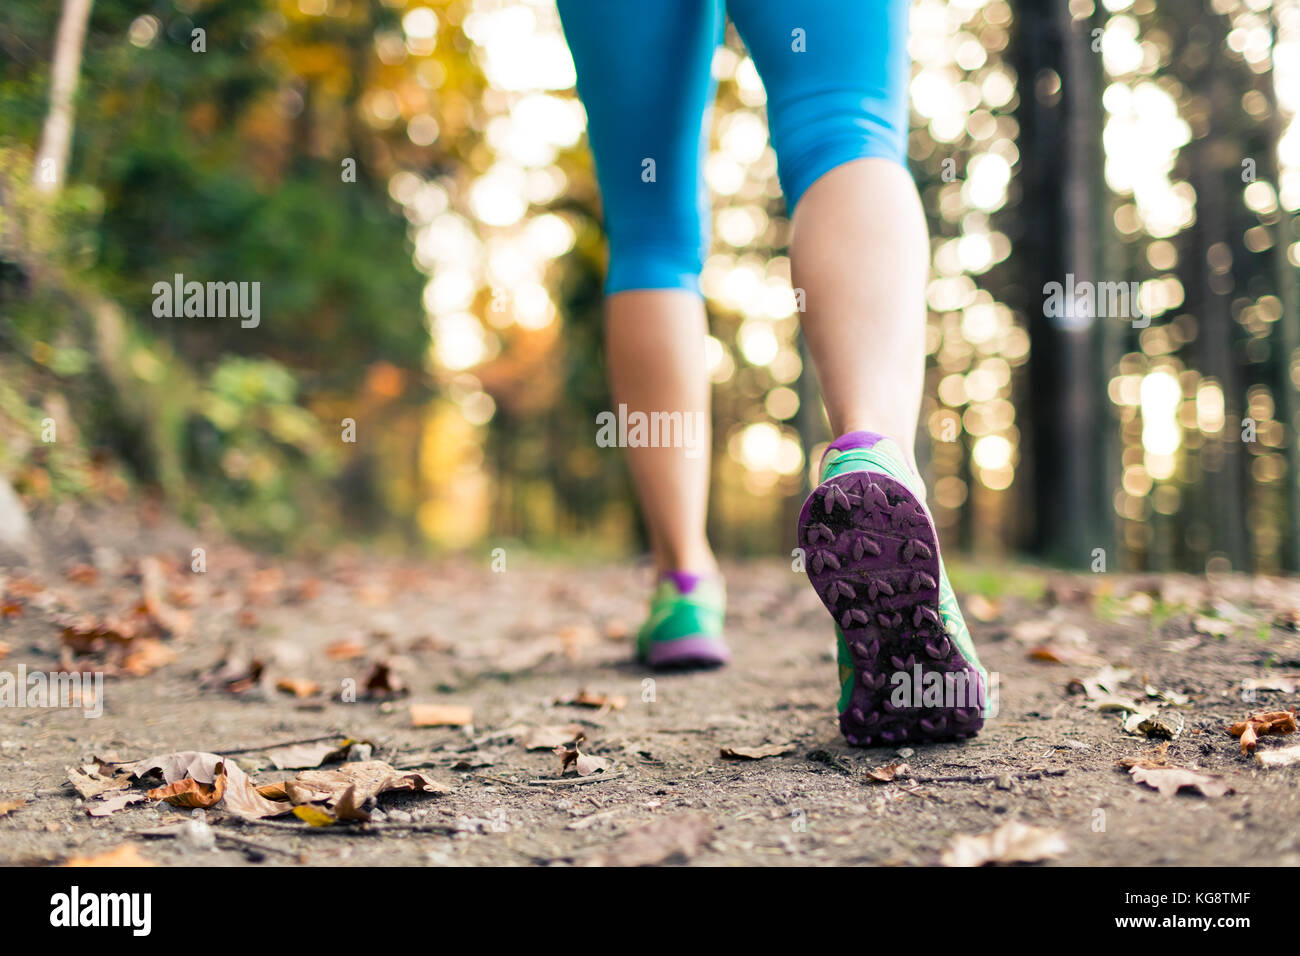 Woman walking and hiking in autumn forest, sport shoes. Jogging, trekking or training outside in autumn nature. - Stock Image